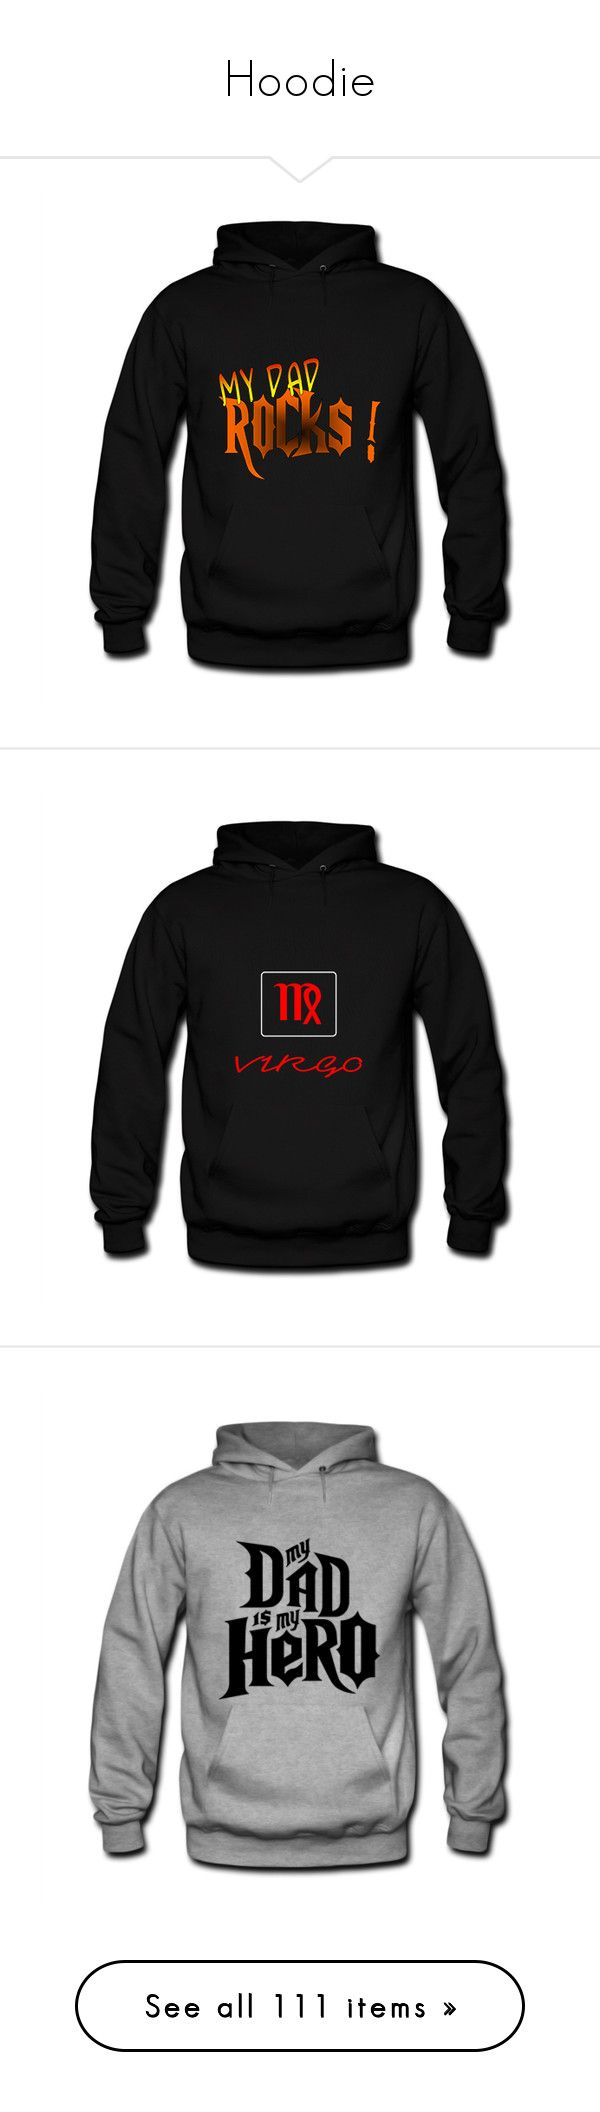 """Hoodie"" by snapmade ❤ liked on Polyvore featuring men's fashion, men's clothing, men's hoodies, mens cotton hoodie, mens zip up hoodies, mens hoodie, mens hoodies, mens sweatshirts and hoodies, mens zip up hoodie and mens cotton hoodies"